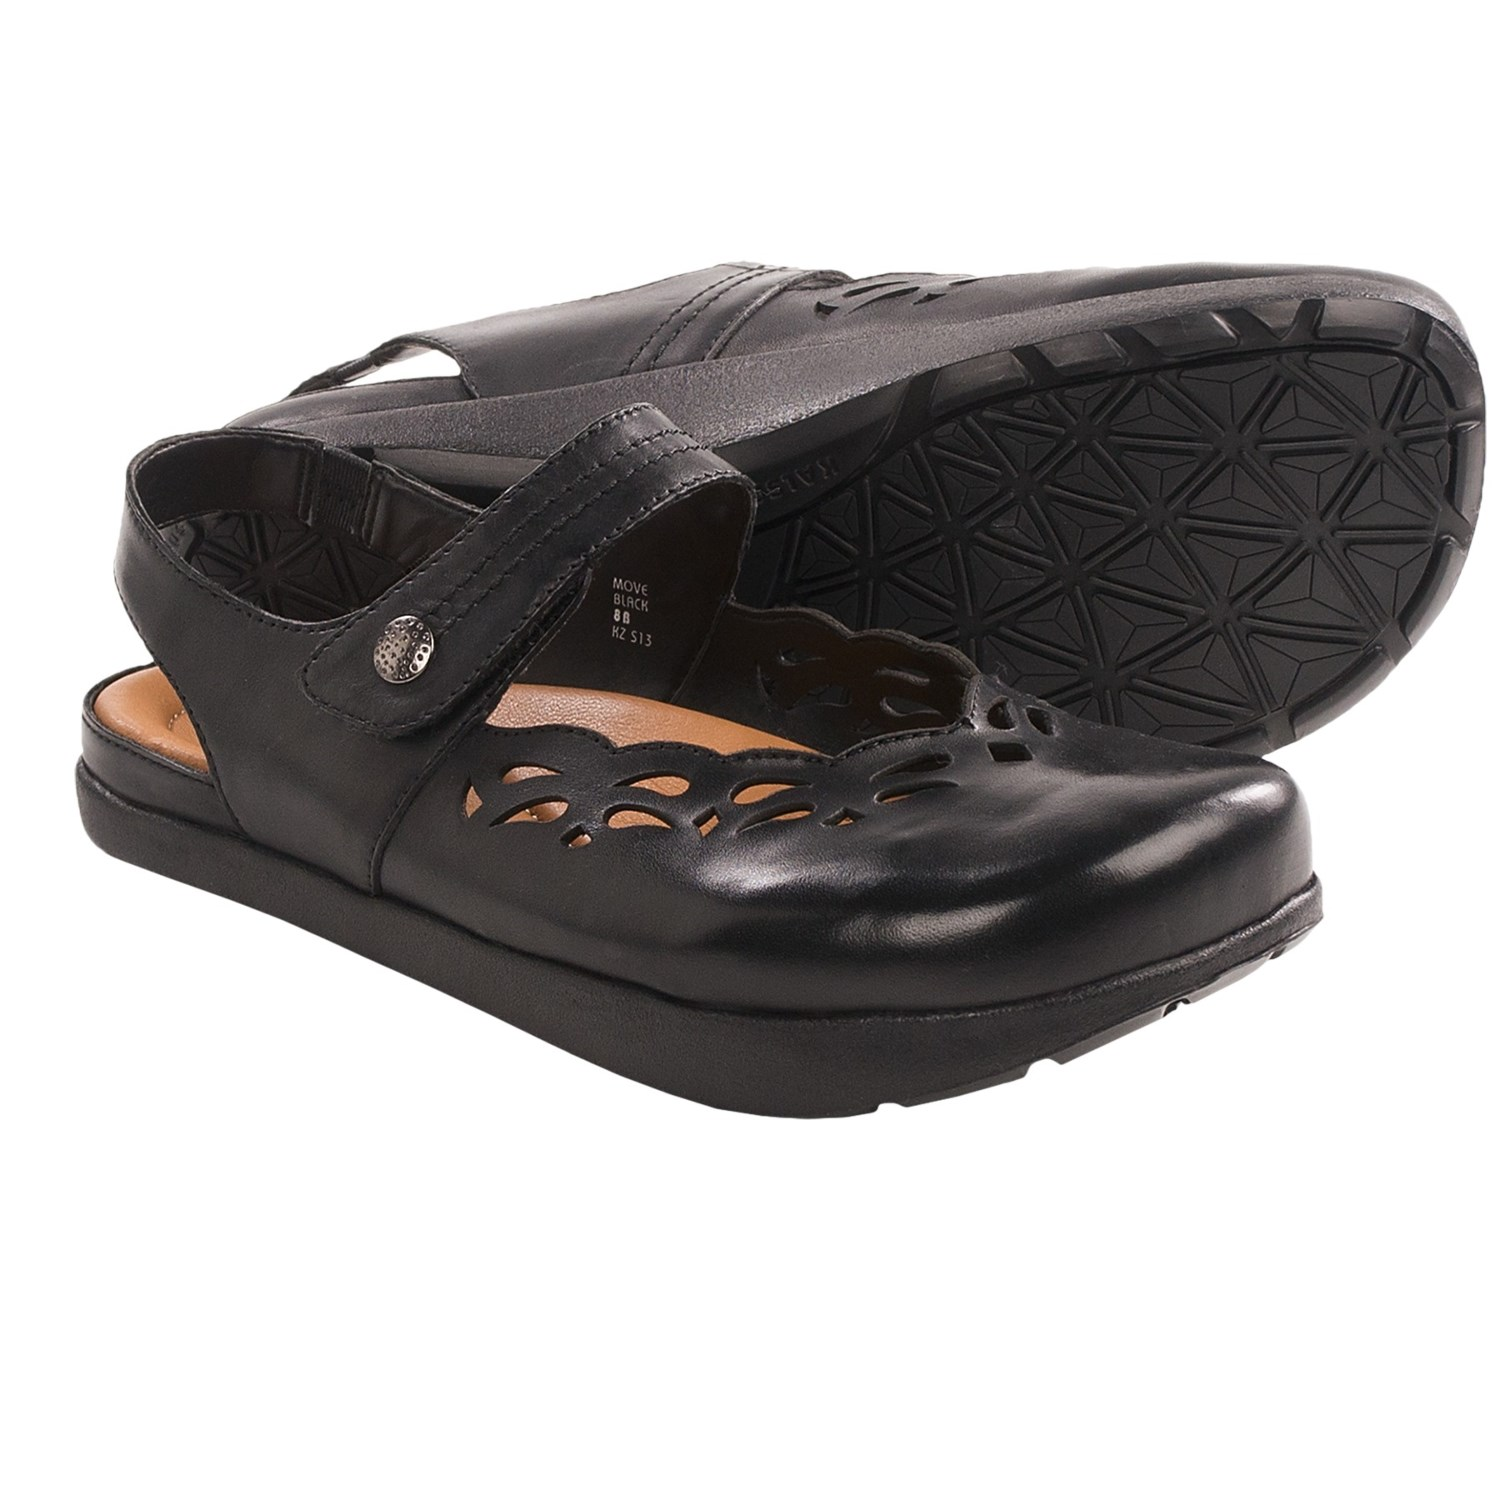 Kalso Earth Move Mary Jane Shoes - Leather (For Women) in Black Calf